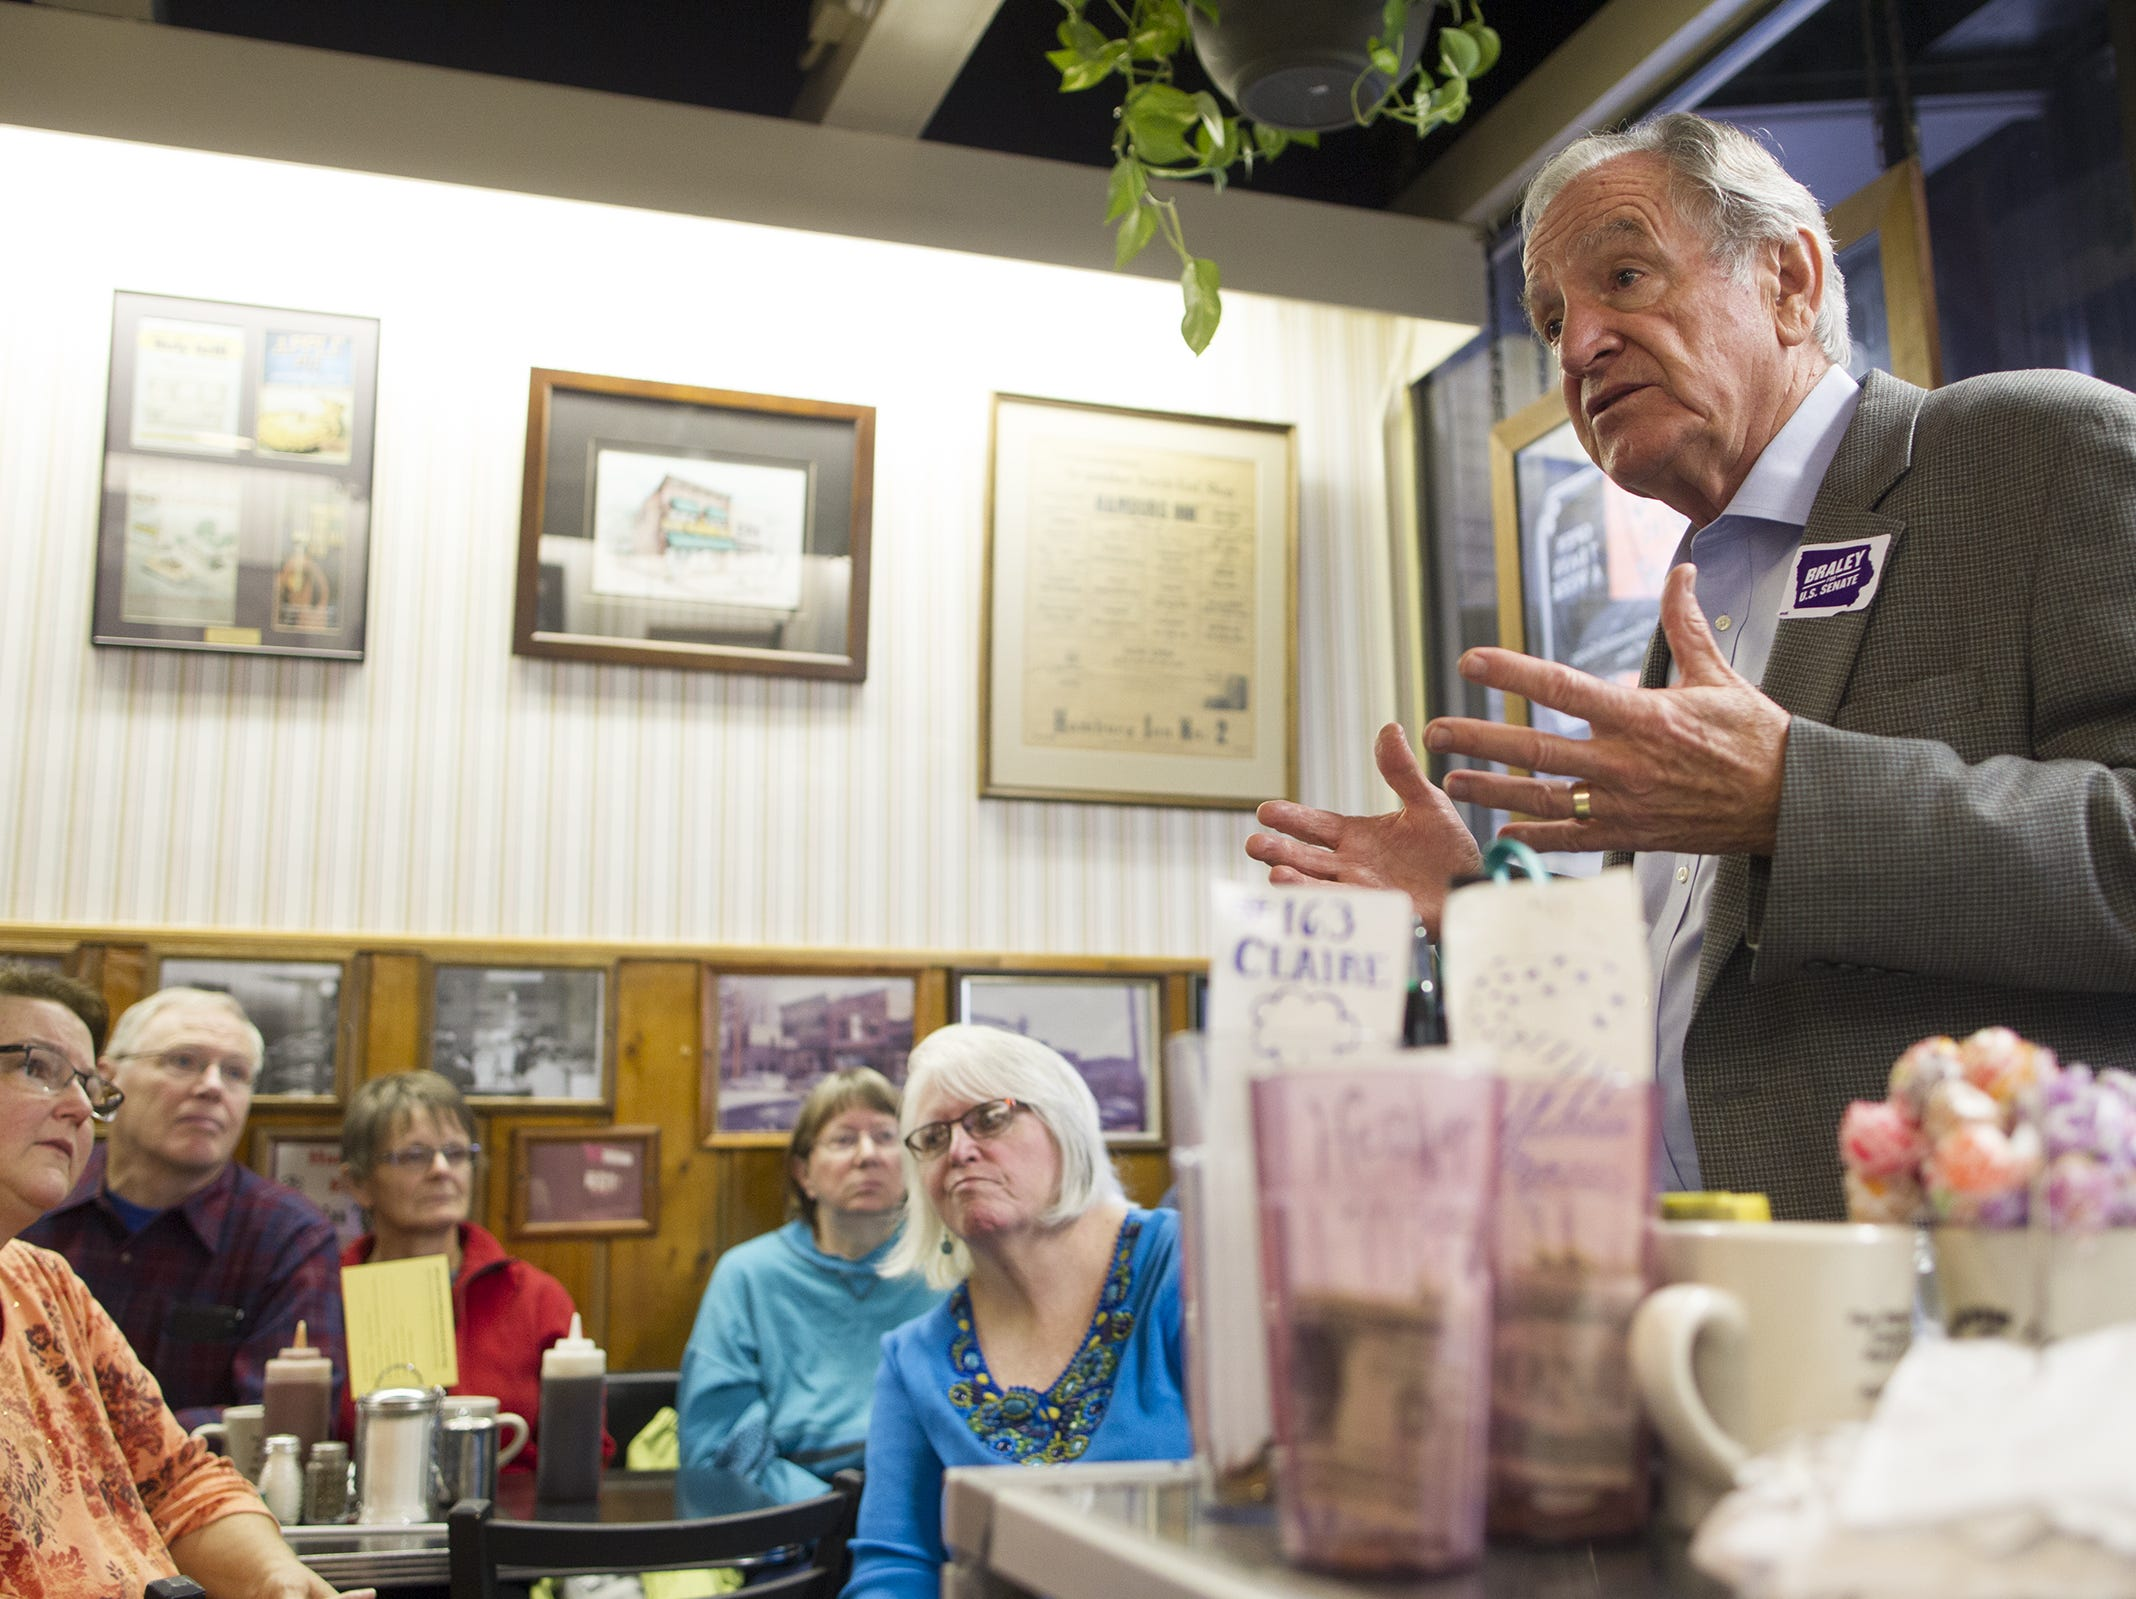 Sen. Tom Harkin, D-Iowa, speaks to guests at Hamburg Inn during a campaign stop for Democratic Senate candidate Bruce Braley on Tuesday, Oct. 14, 2014.